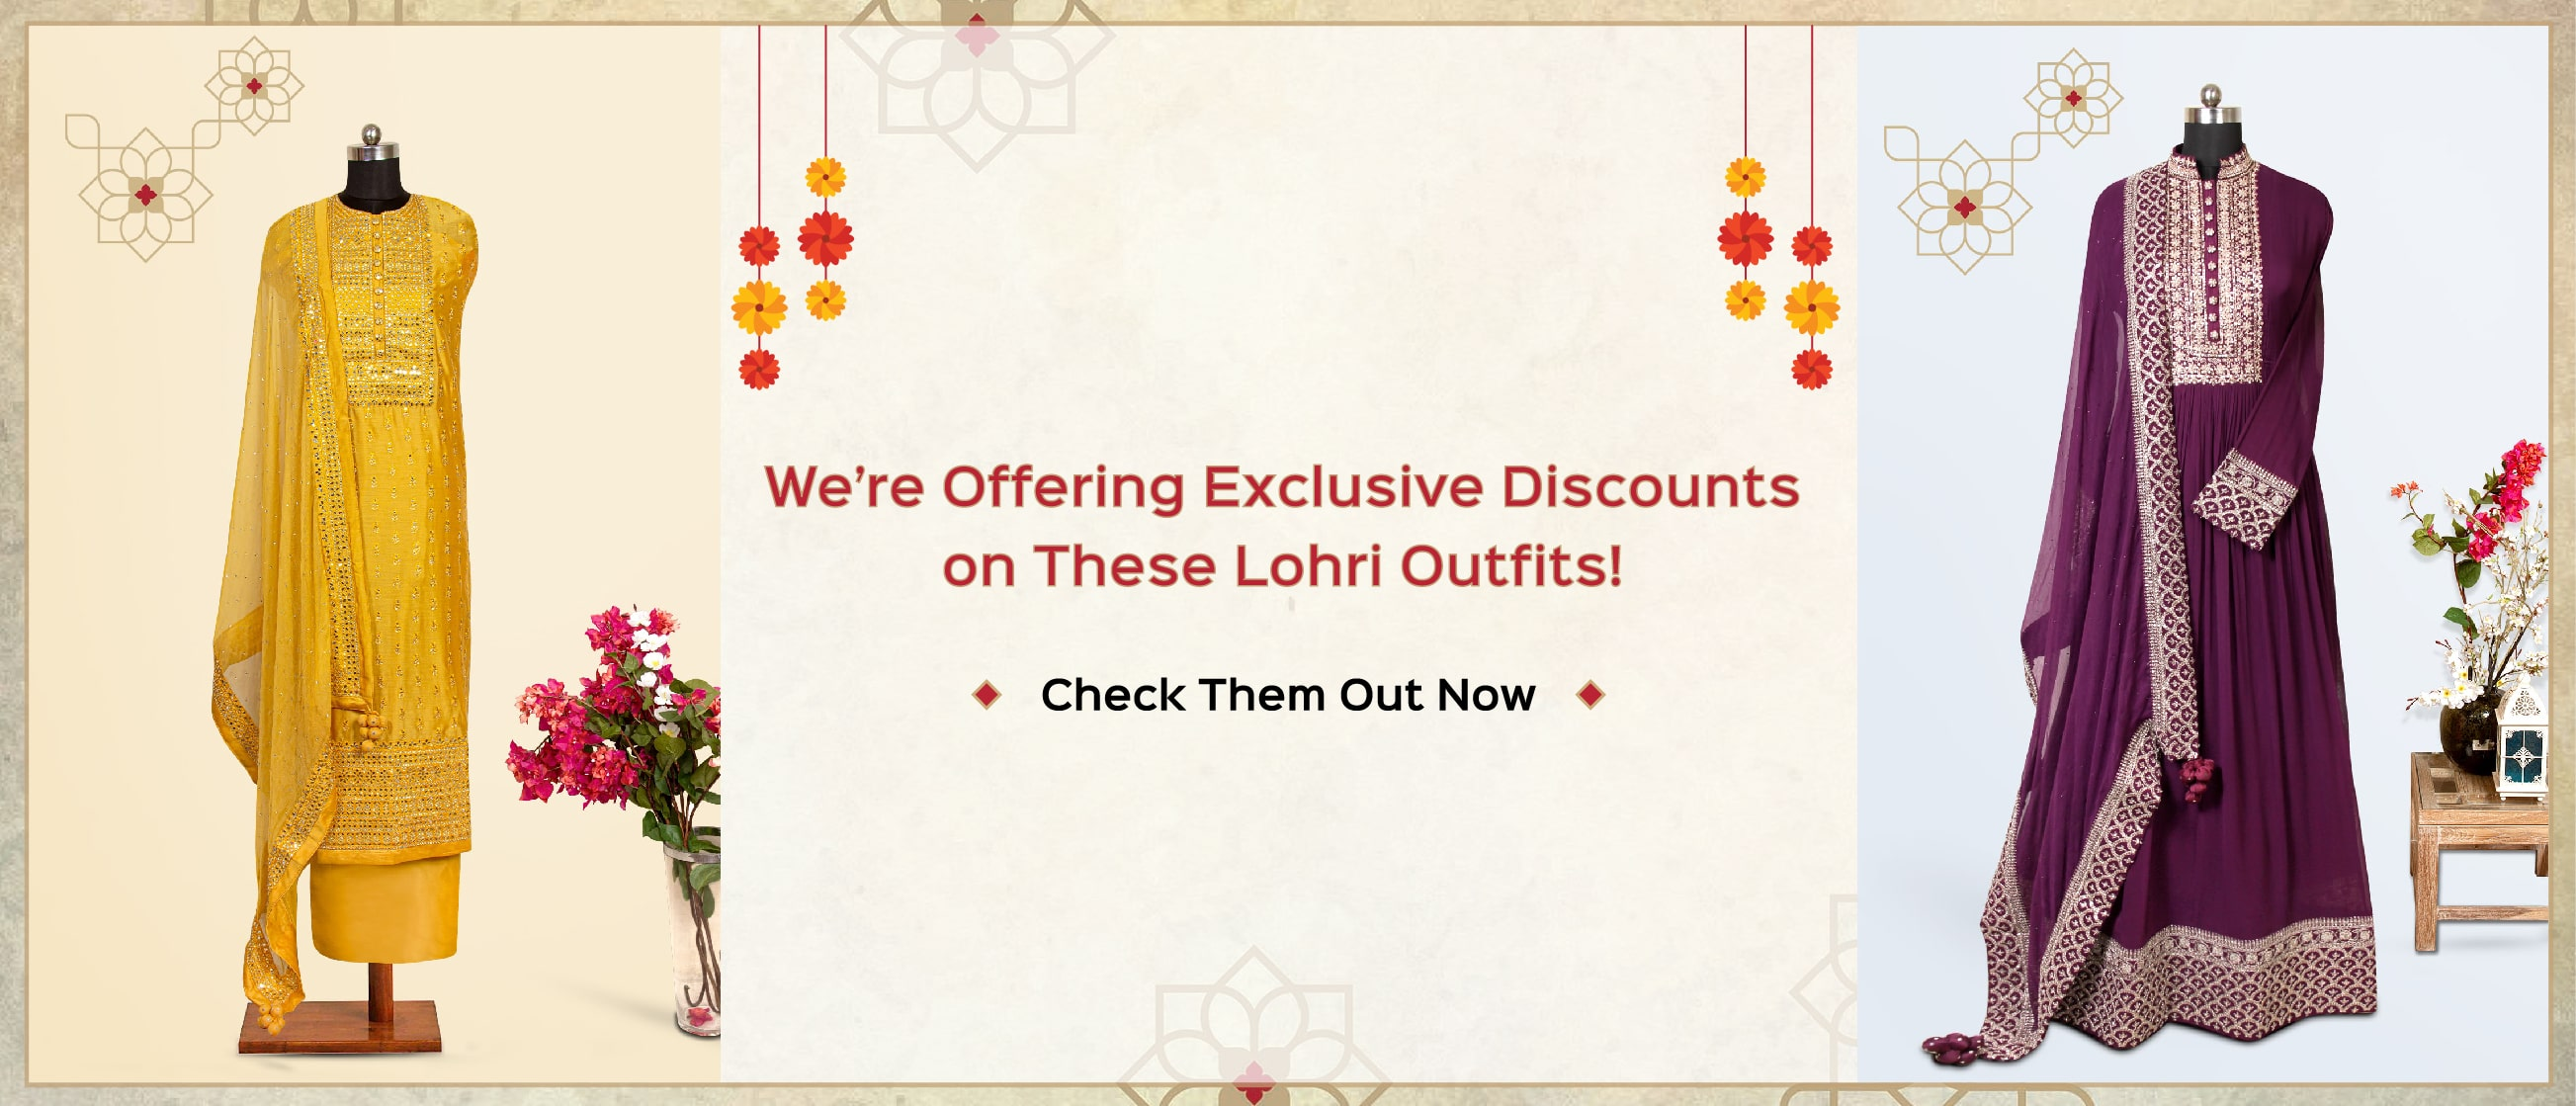 We're Offering Exclusive Discounts on These Lohri Outfits! Check Them Out Now